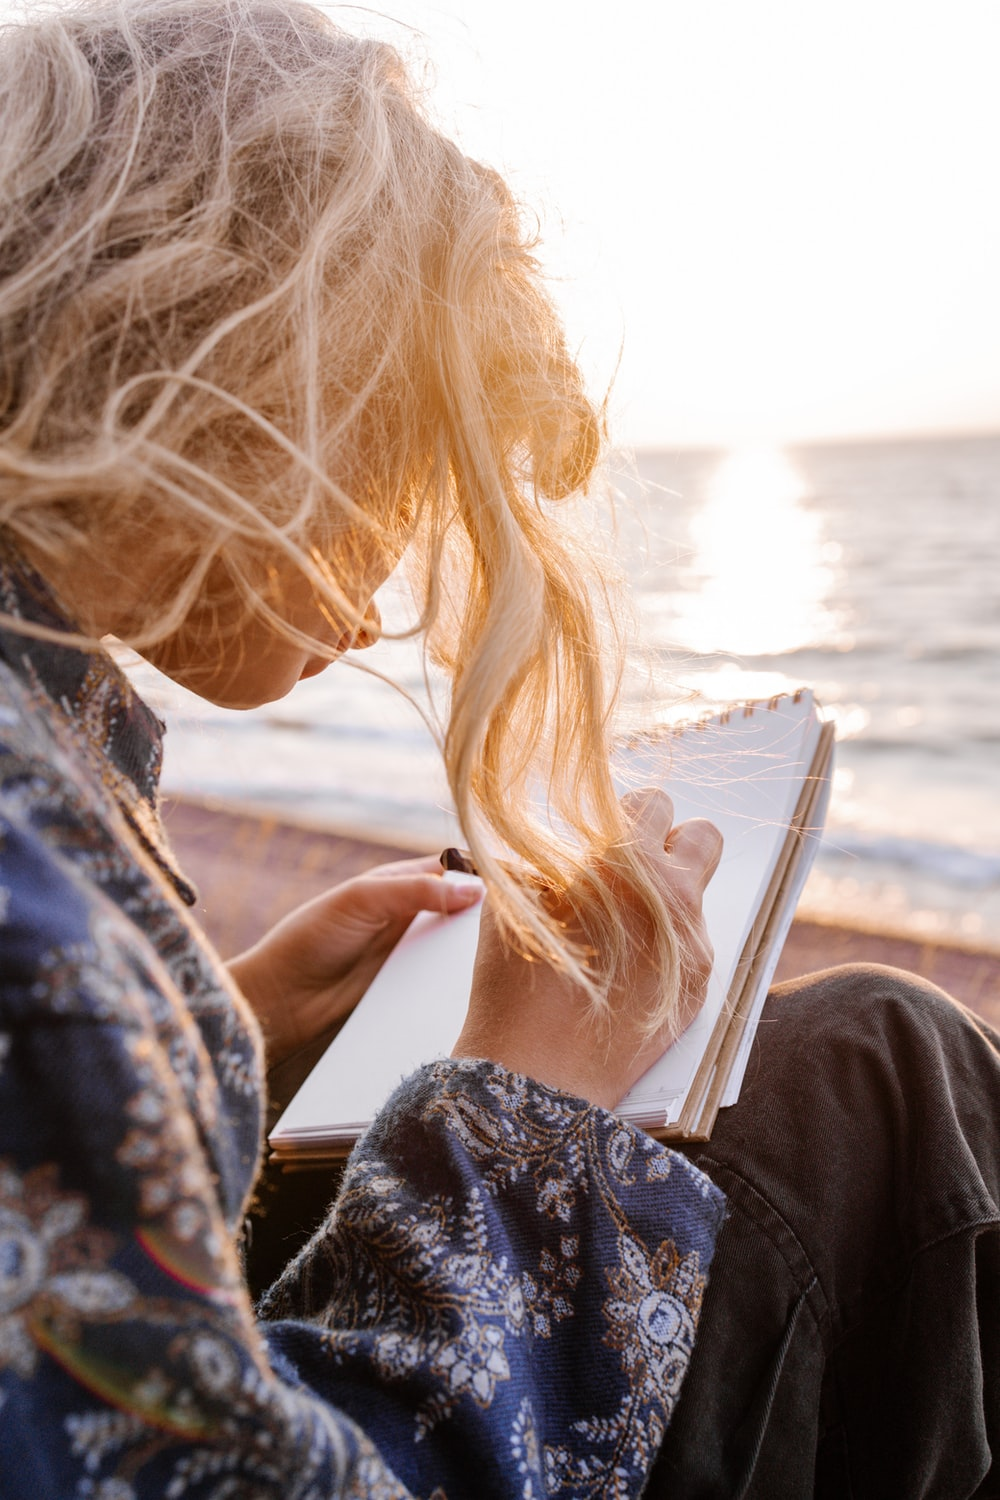 woman in blue and white floral shirt holding book near body of water during daytime